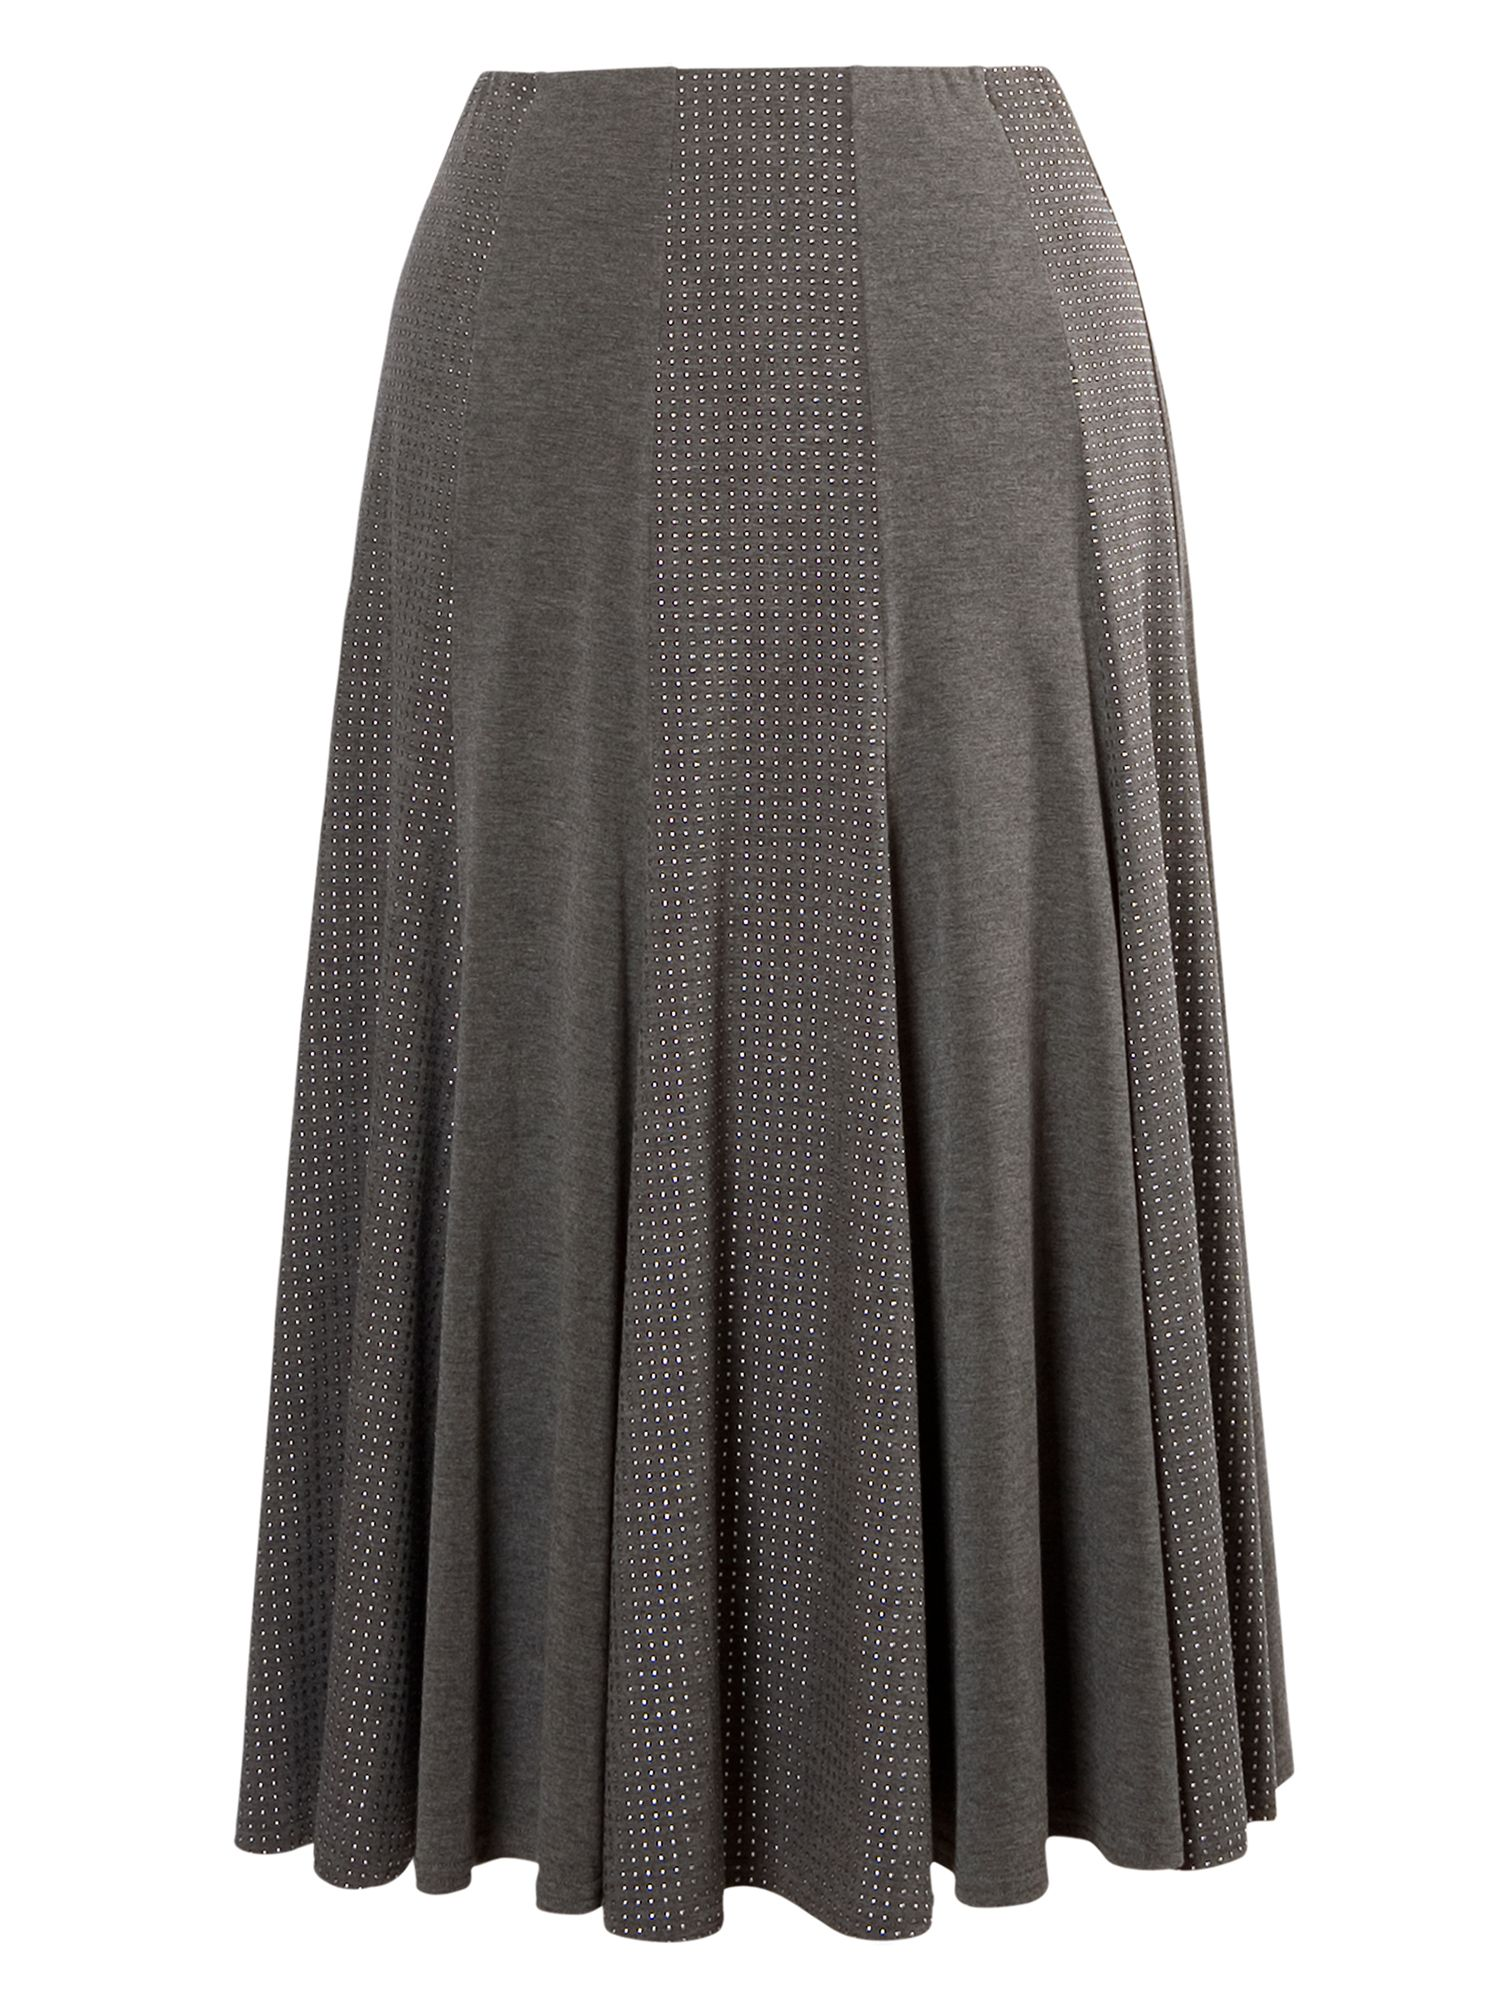 Studded melange jersey mixed panel skirt